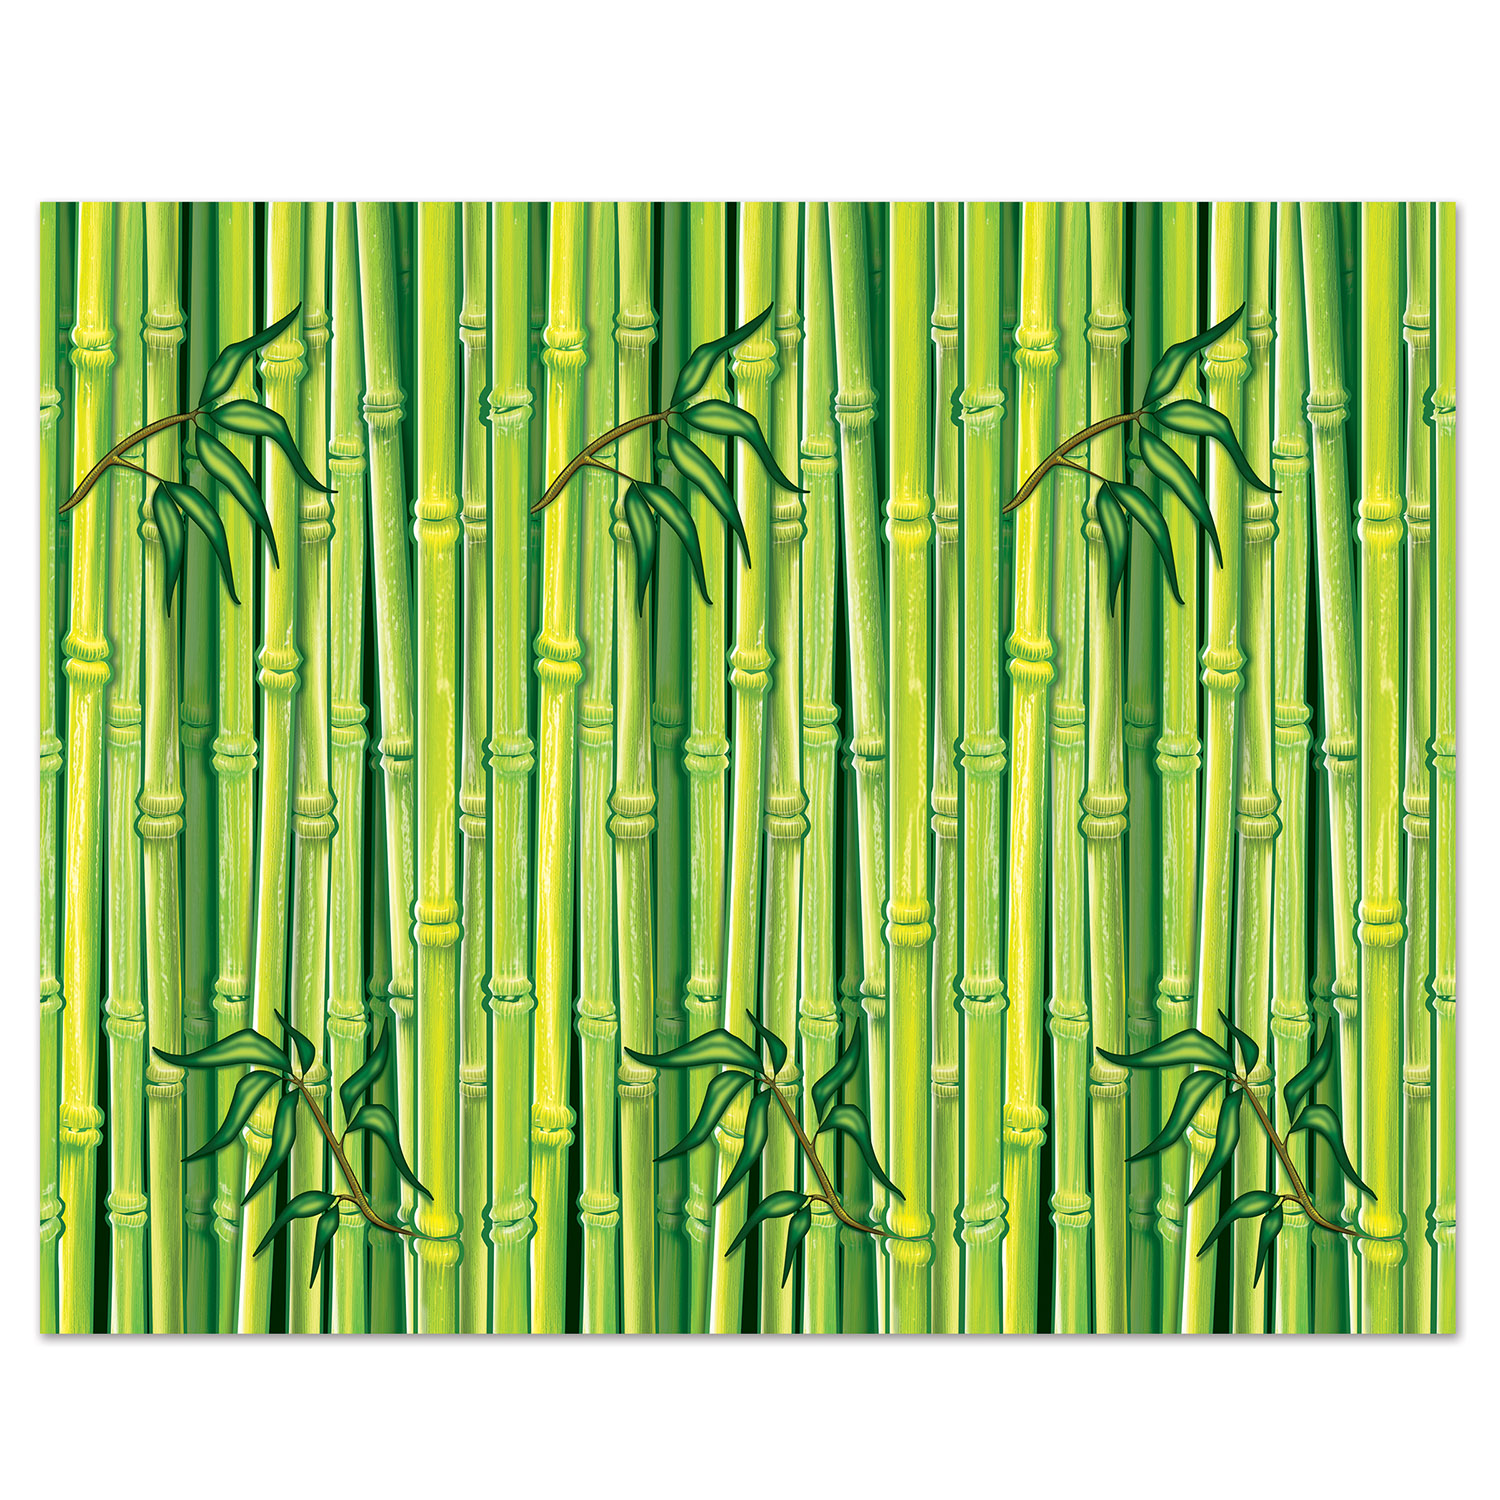 Bamboo Backdrop (Pack of 6) Bamboo Backdrop, decoration, luau, safari, wholesale, inexpensive, bulk, new years eve